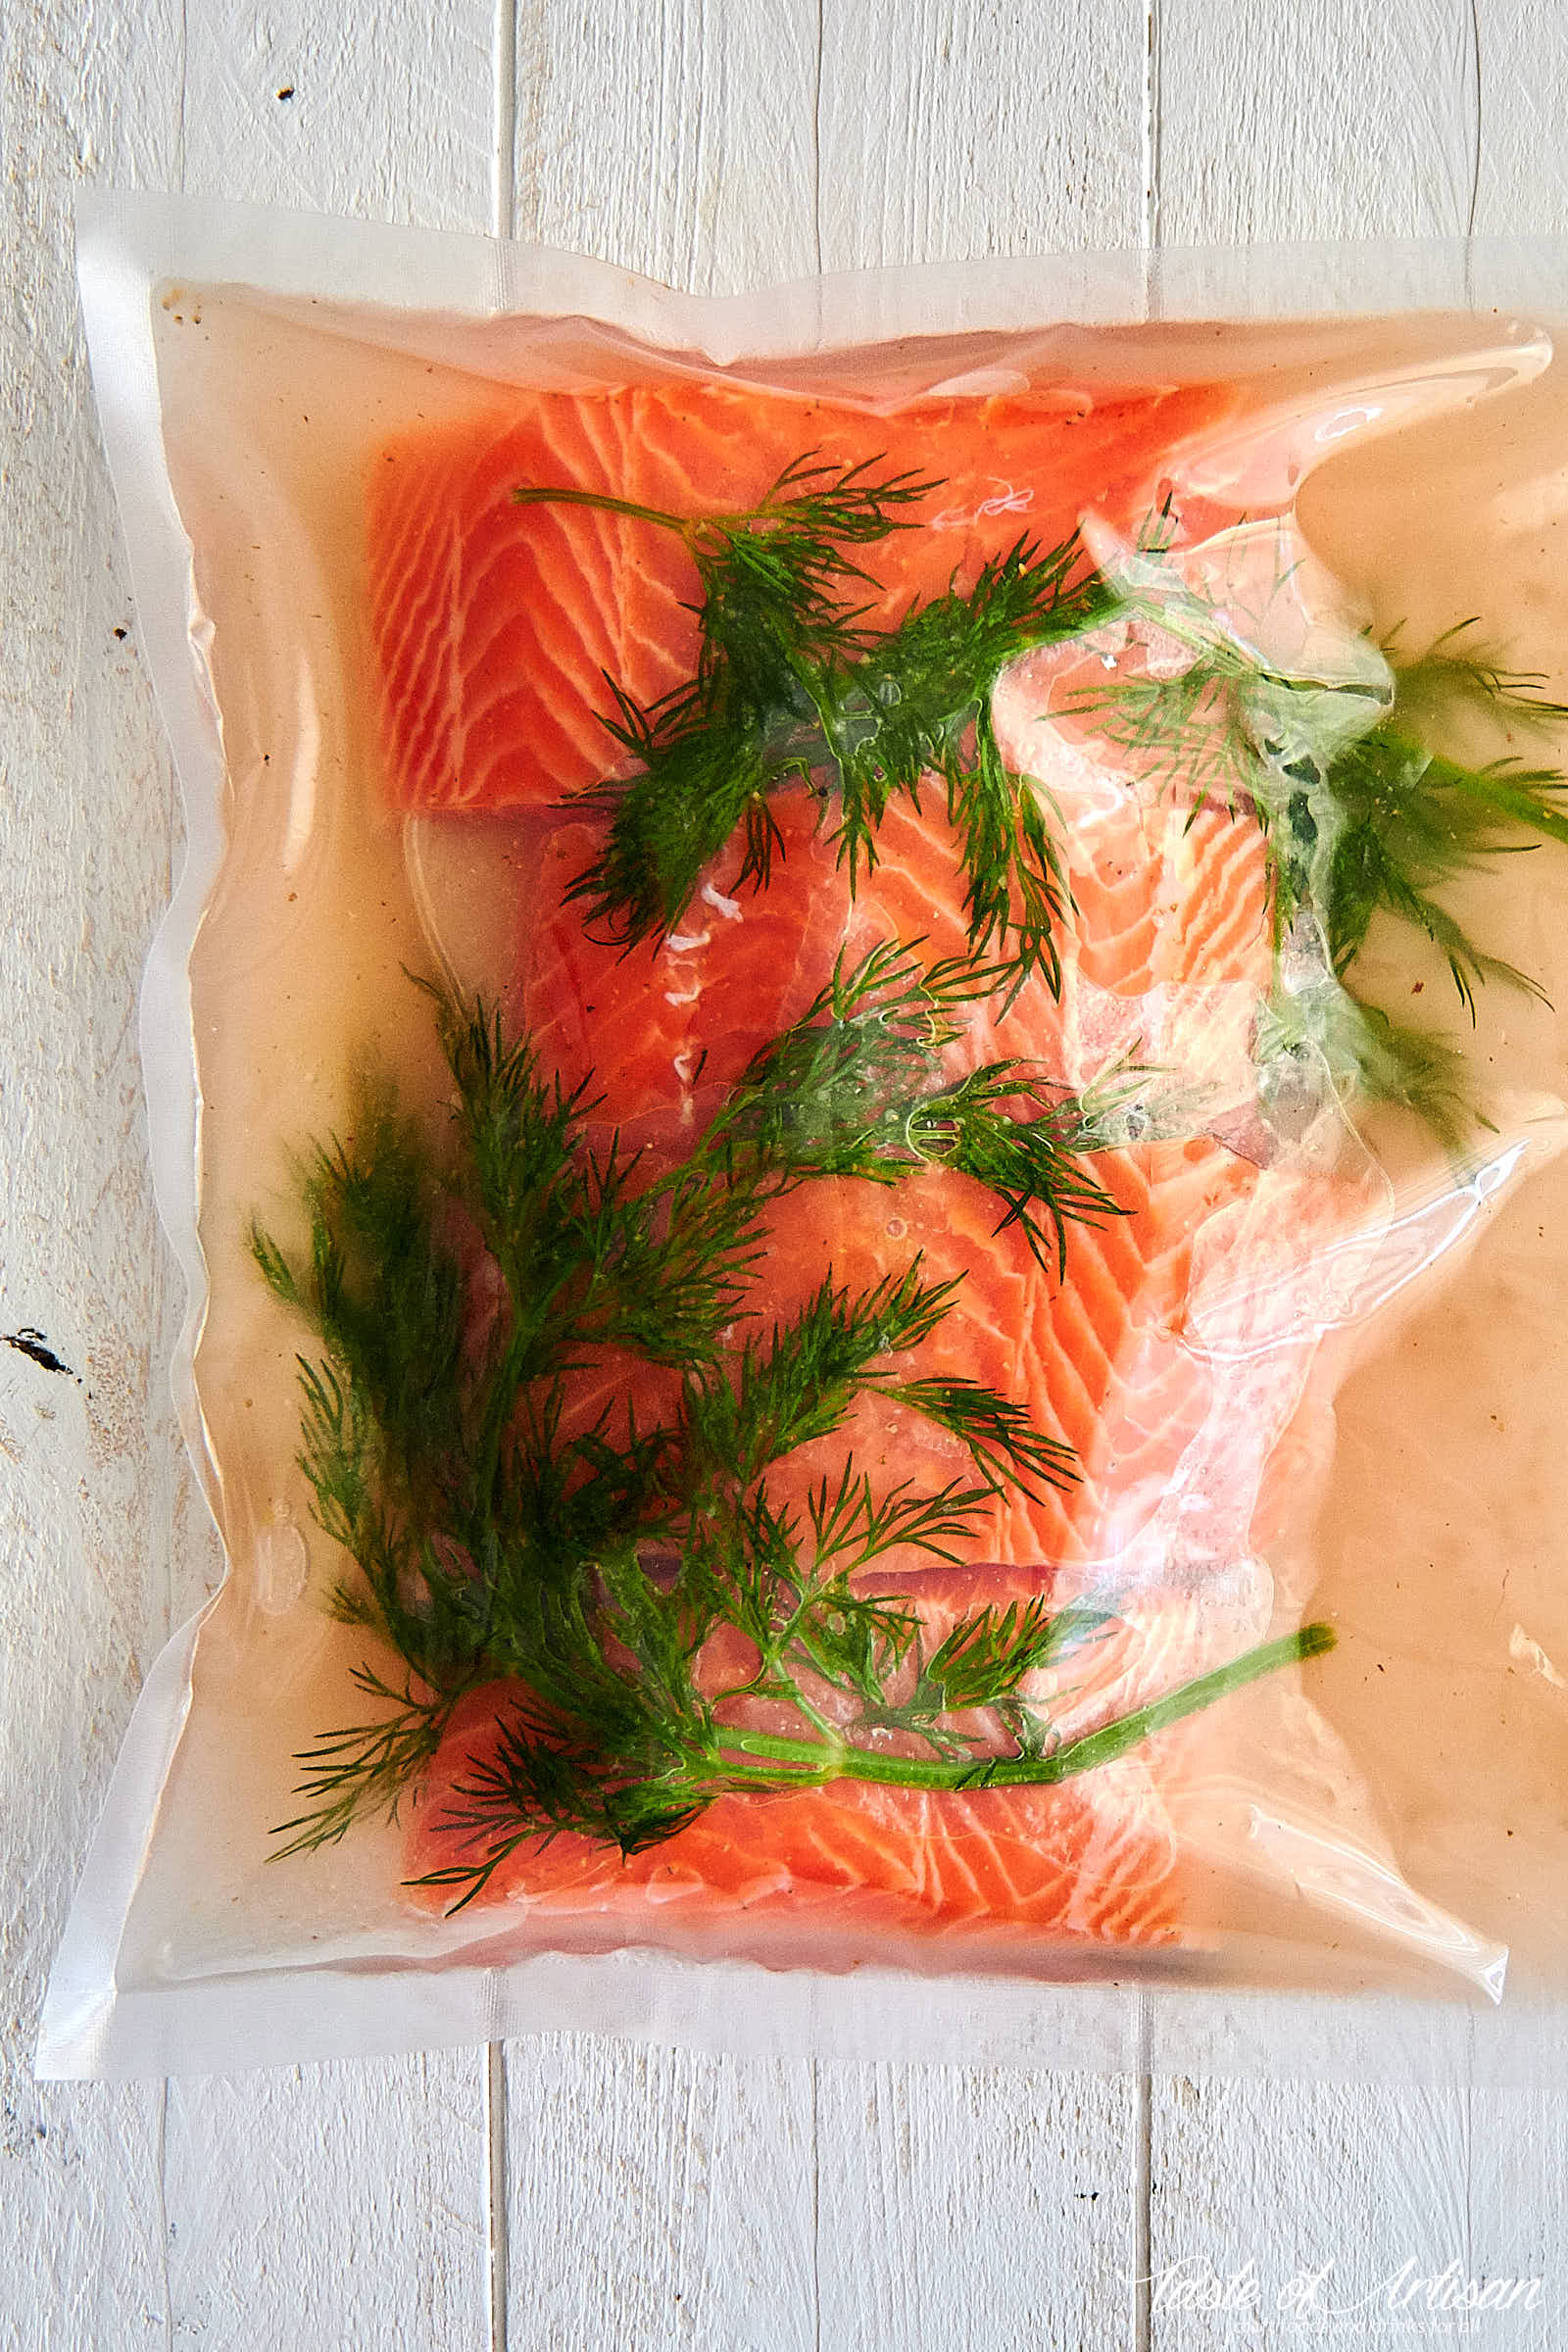 Sous Vide Salmon - putting salmon in brine makes it very flavorful and seasoned inside out. | Taste of Artisan